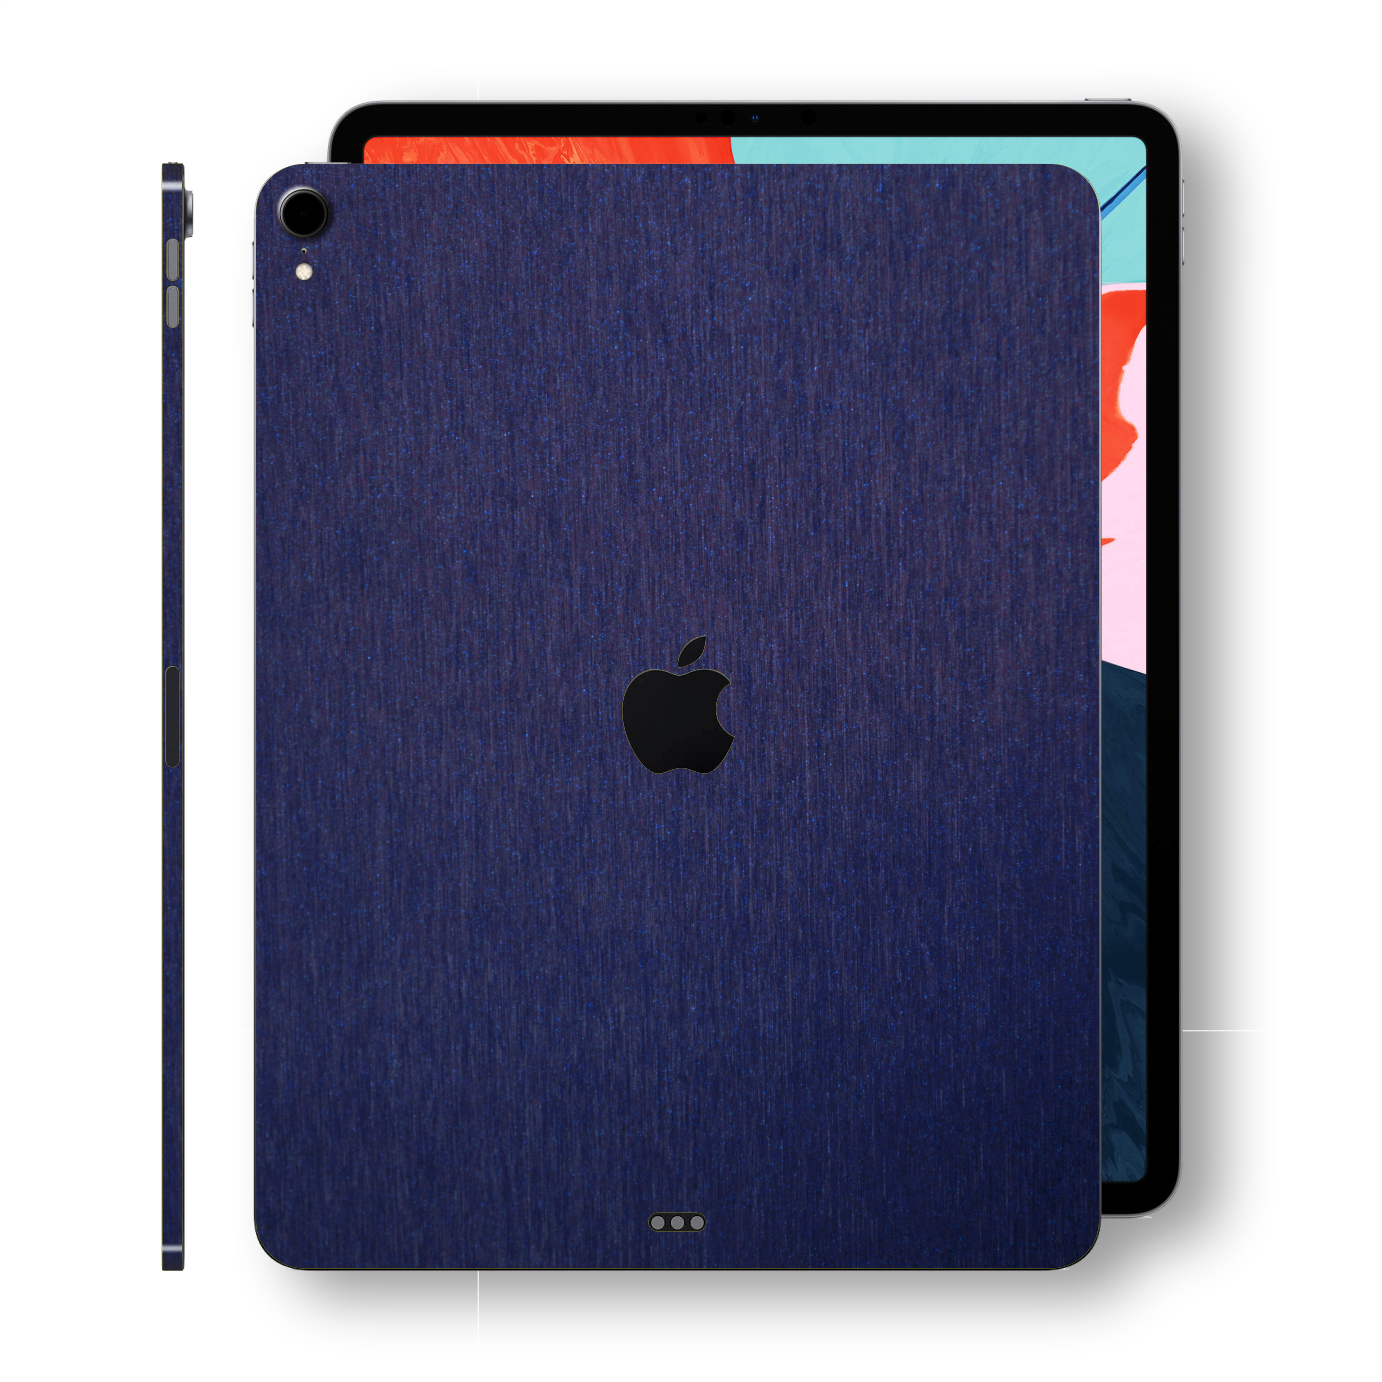 iPad PRO 11-inch 2018 3M Brushed Blue Metallic Skin Wrap Sticker Decal Cover Protector by EasySkinz